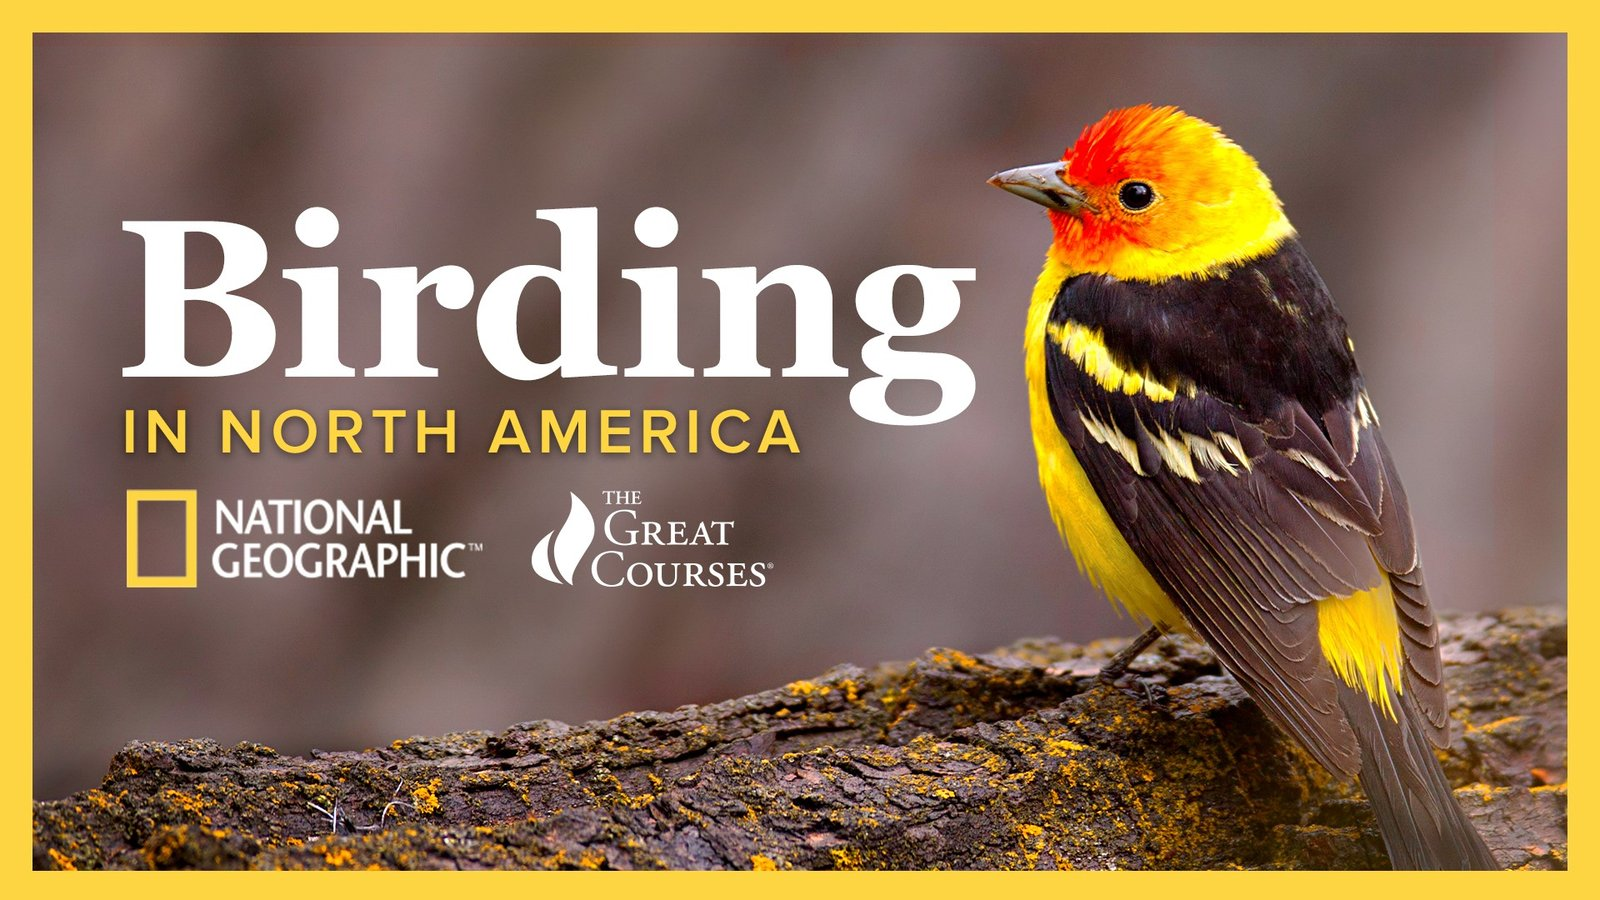 The National Geographic Guide to Birding in North America